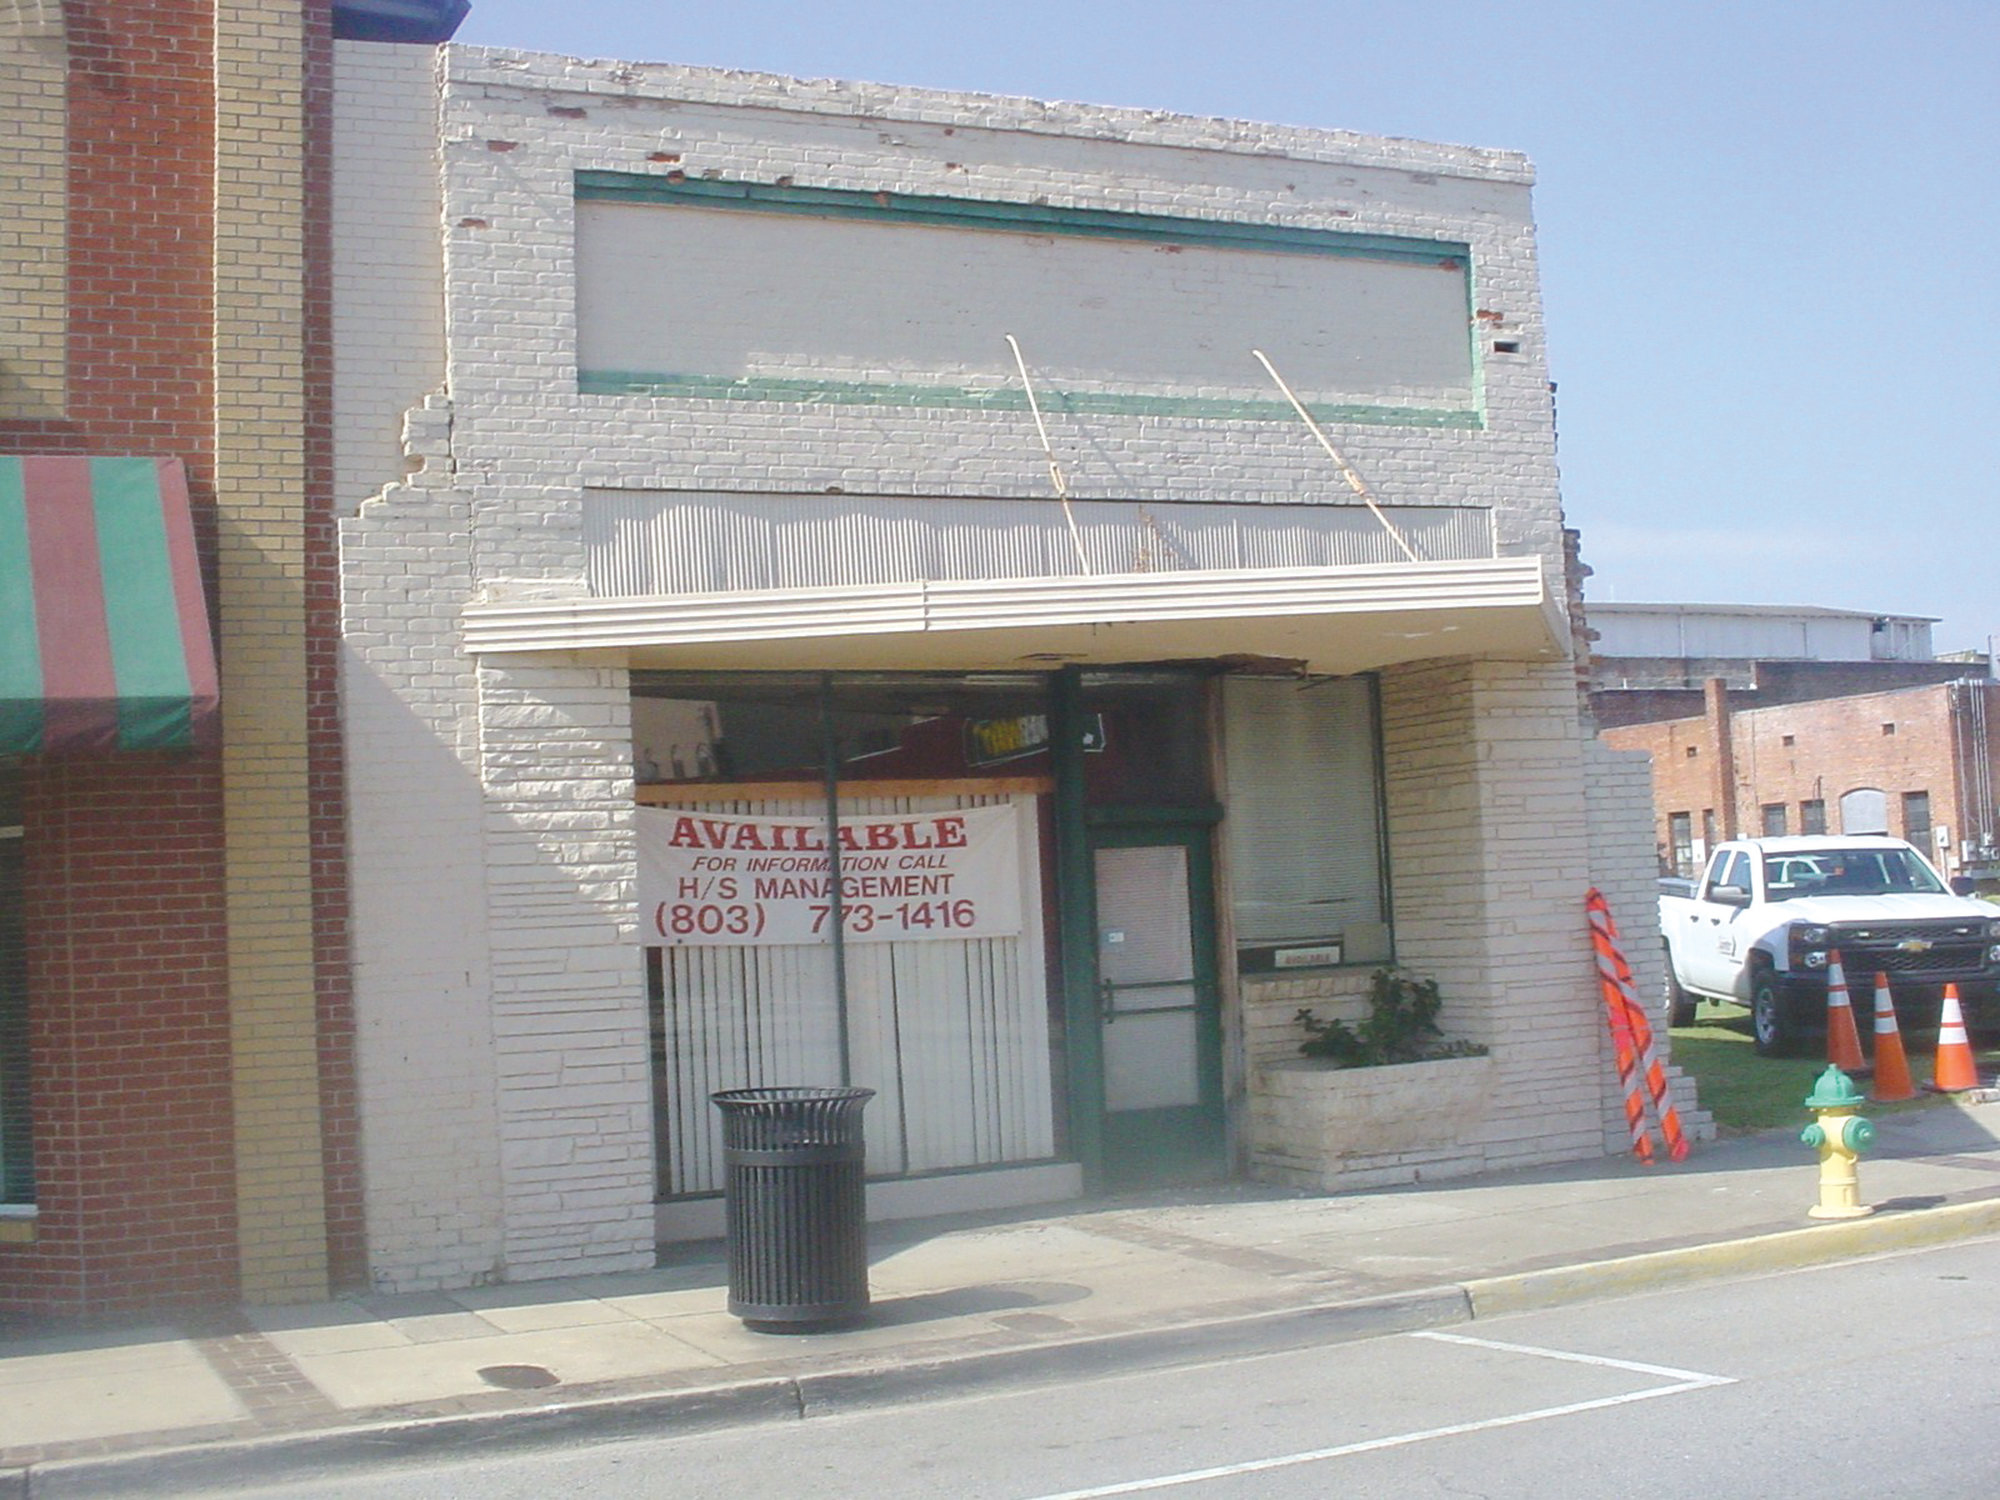 The Rainbow Restaurant, which was formerly located in this building at 16 E. Liberty St. in downtown Sumter, was razed in 2015, and the site is now the home of the Sumter Economic Development Board.